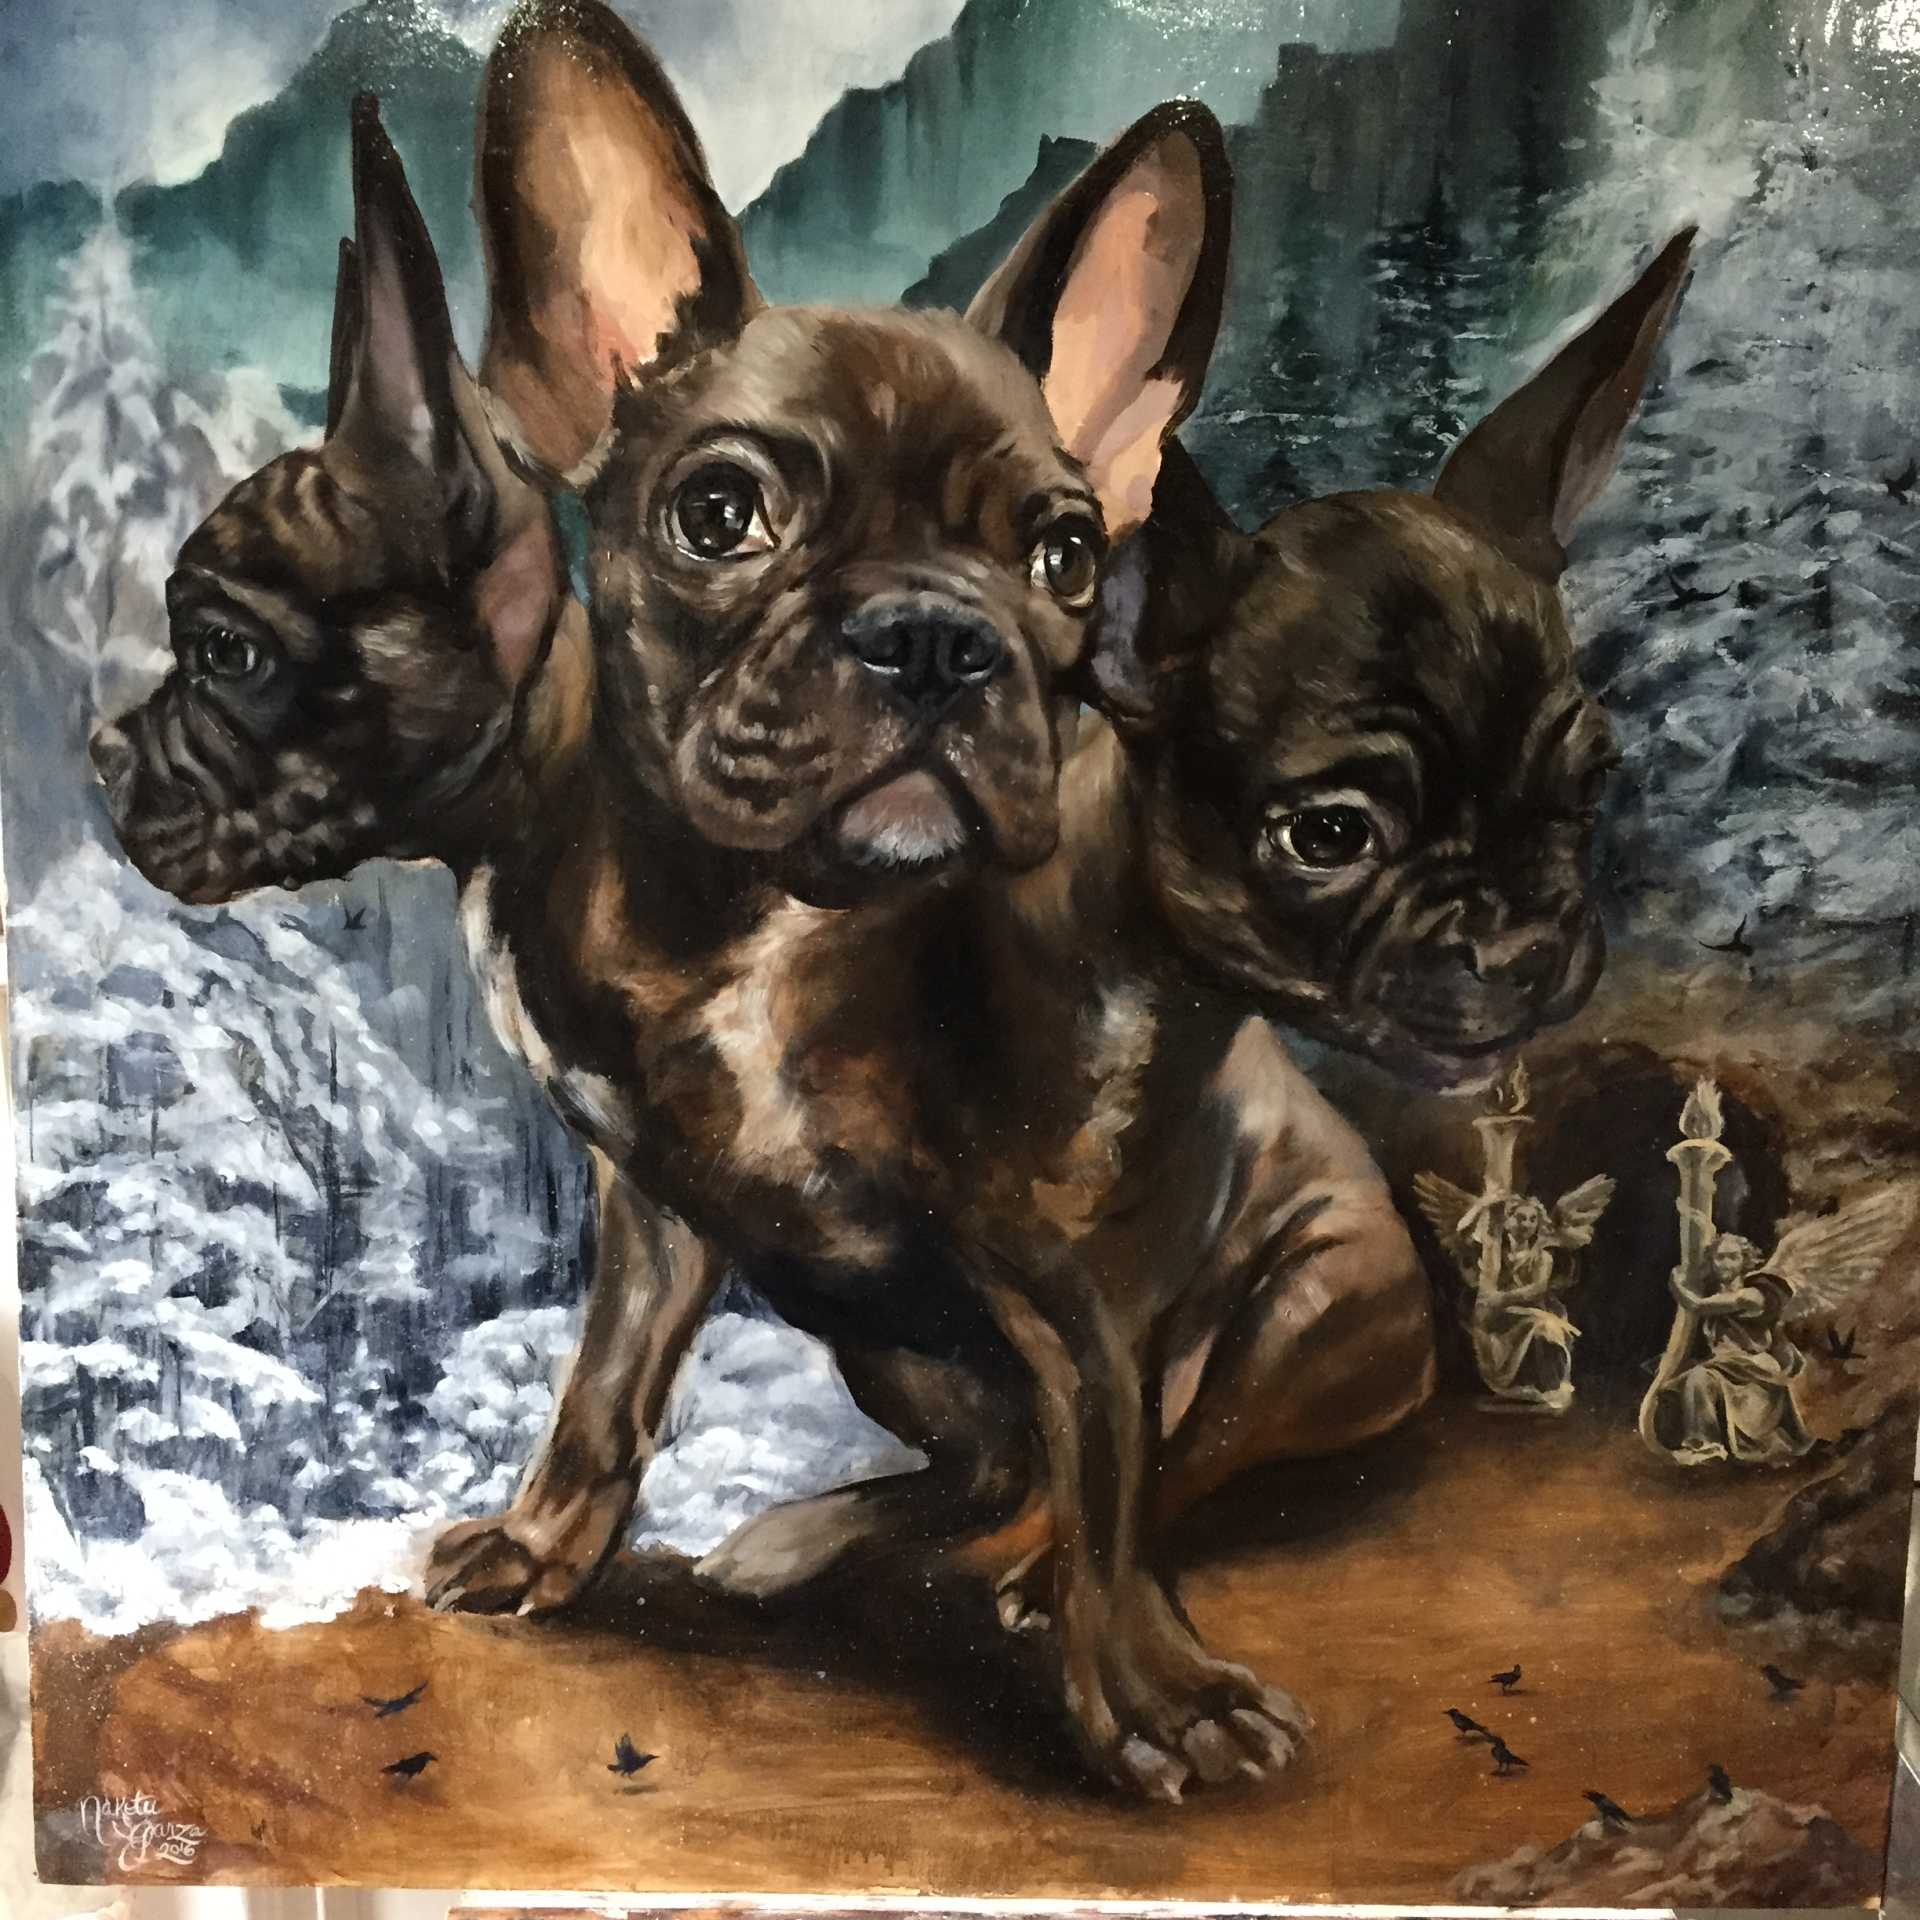 Cerberus, guardian to the gates of hell